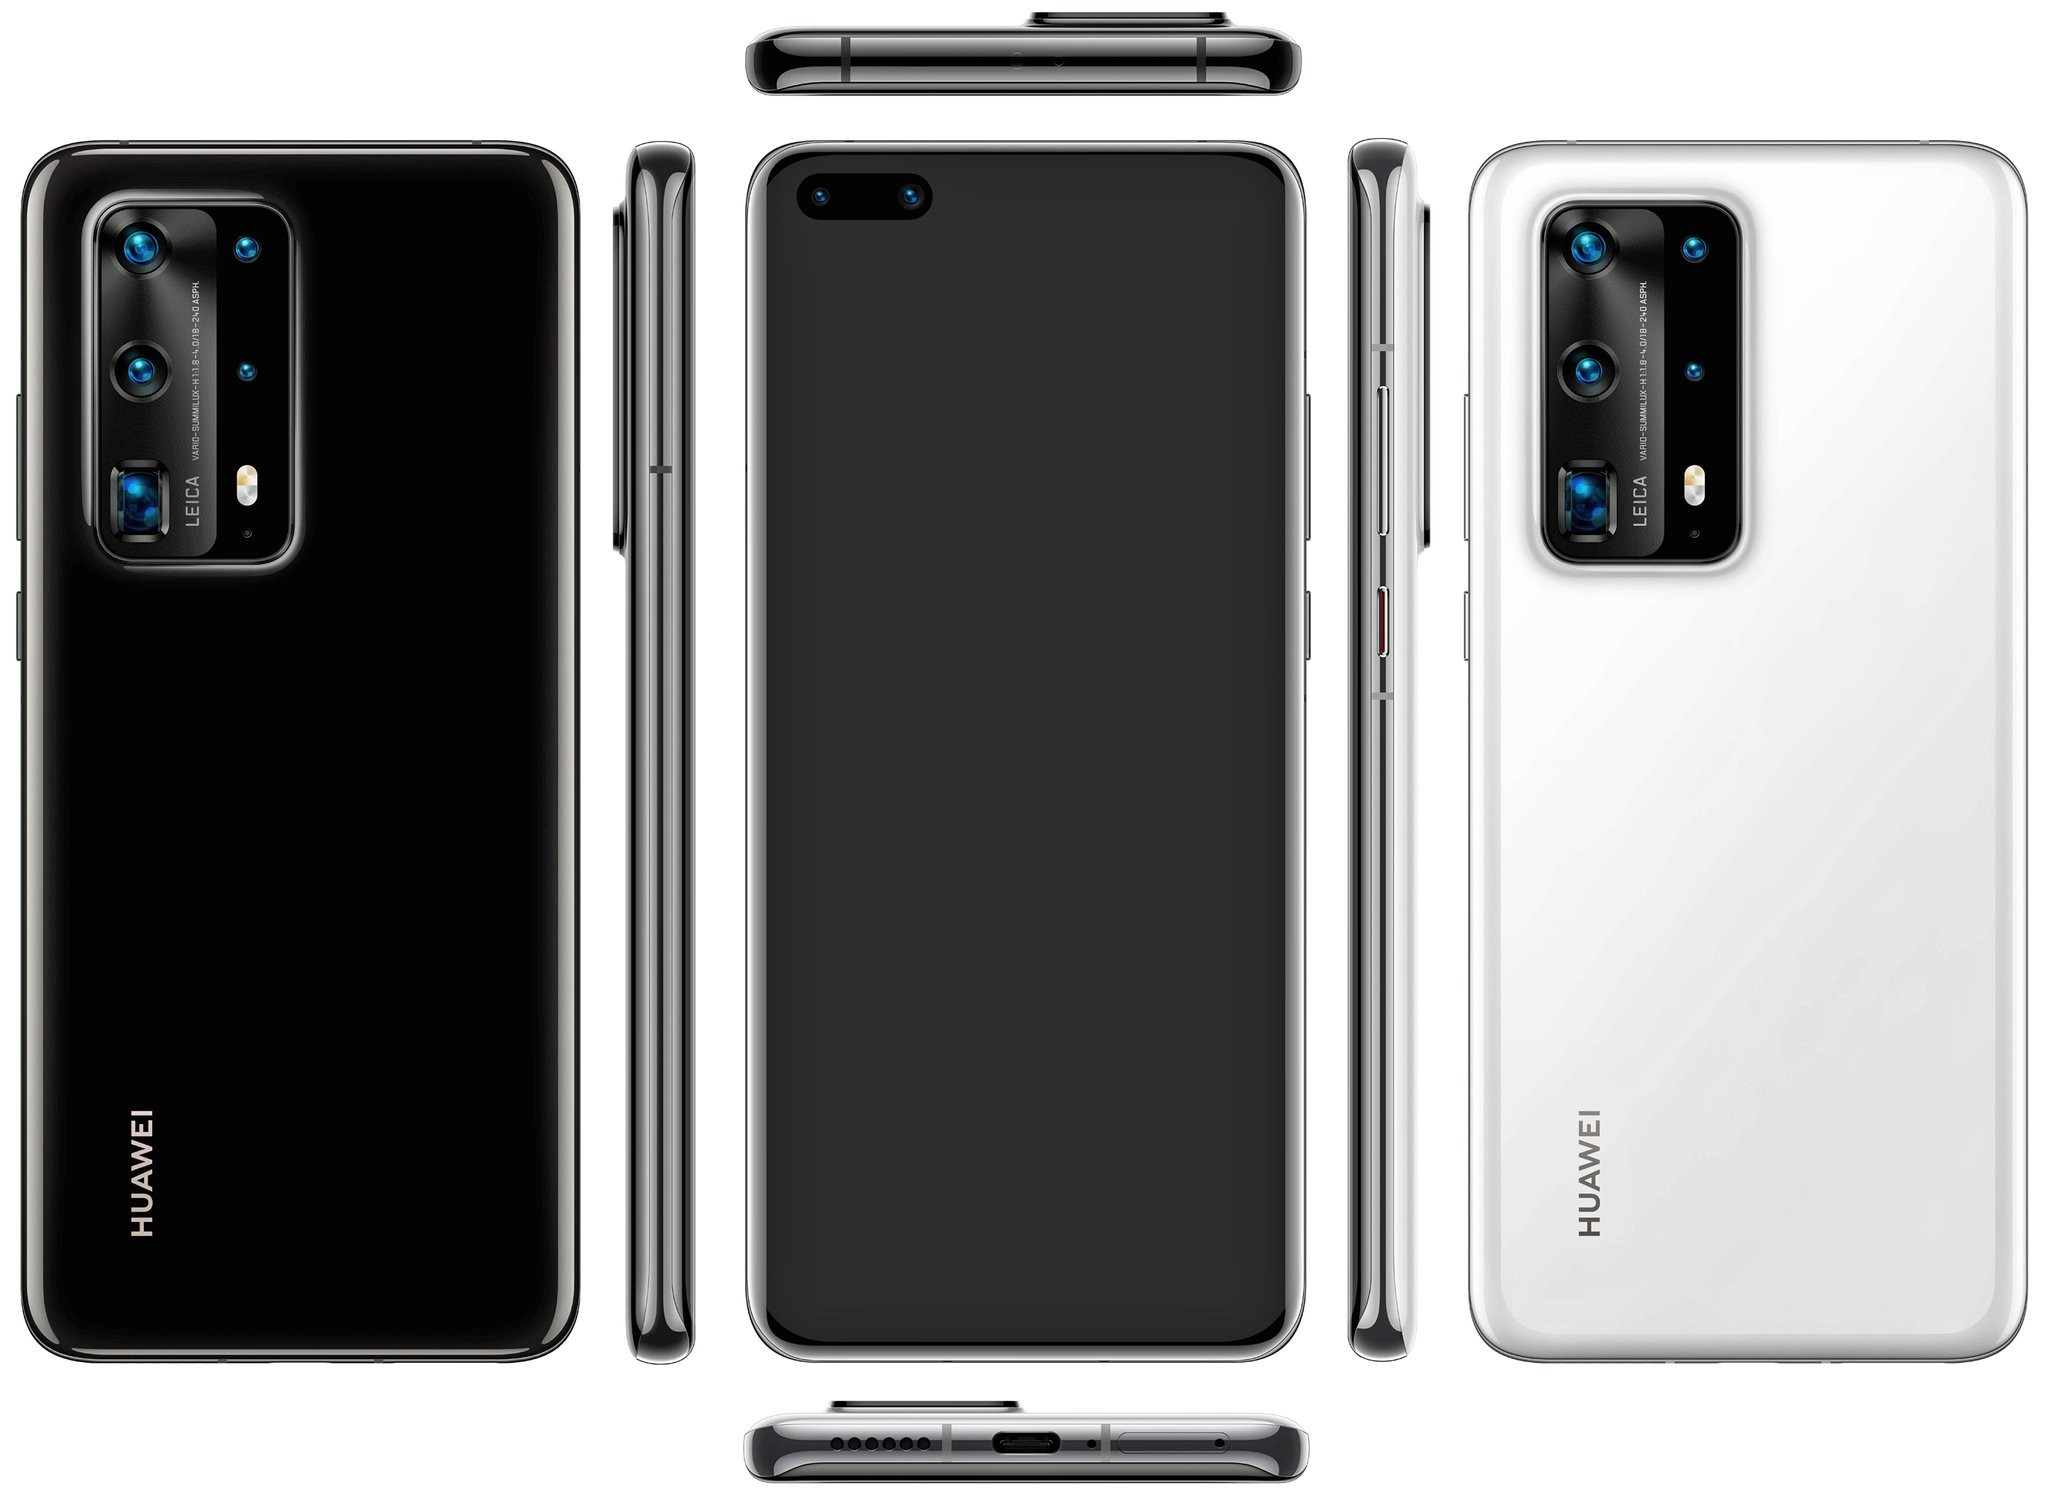 Huawei P40 Premium, Huawei P40 Premium Possibly in the Works, May Pack 10x Optical Zoom, Gadget Pilipinas, Gadget Pilipinas